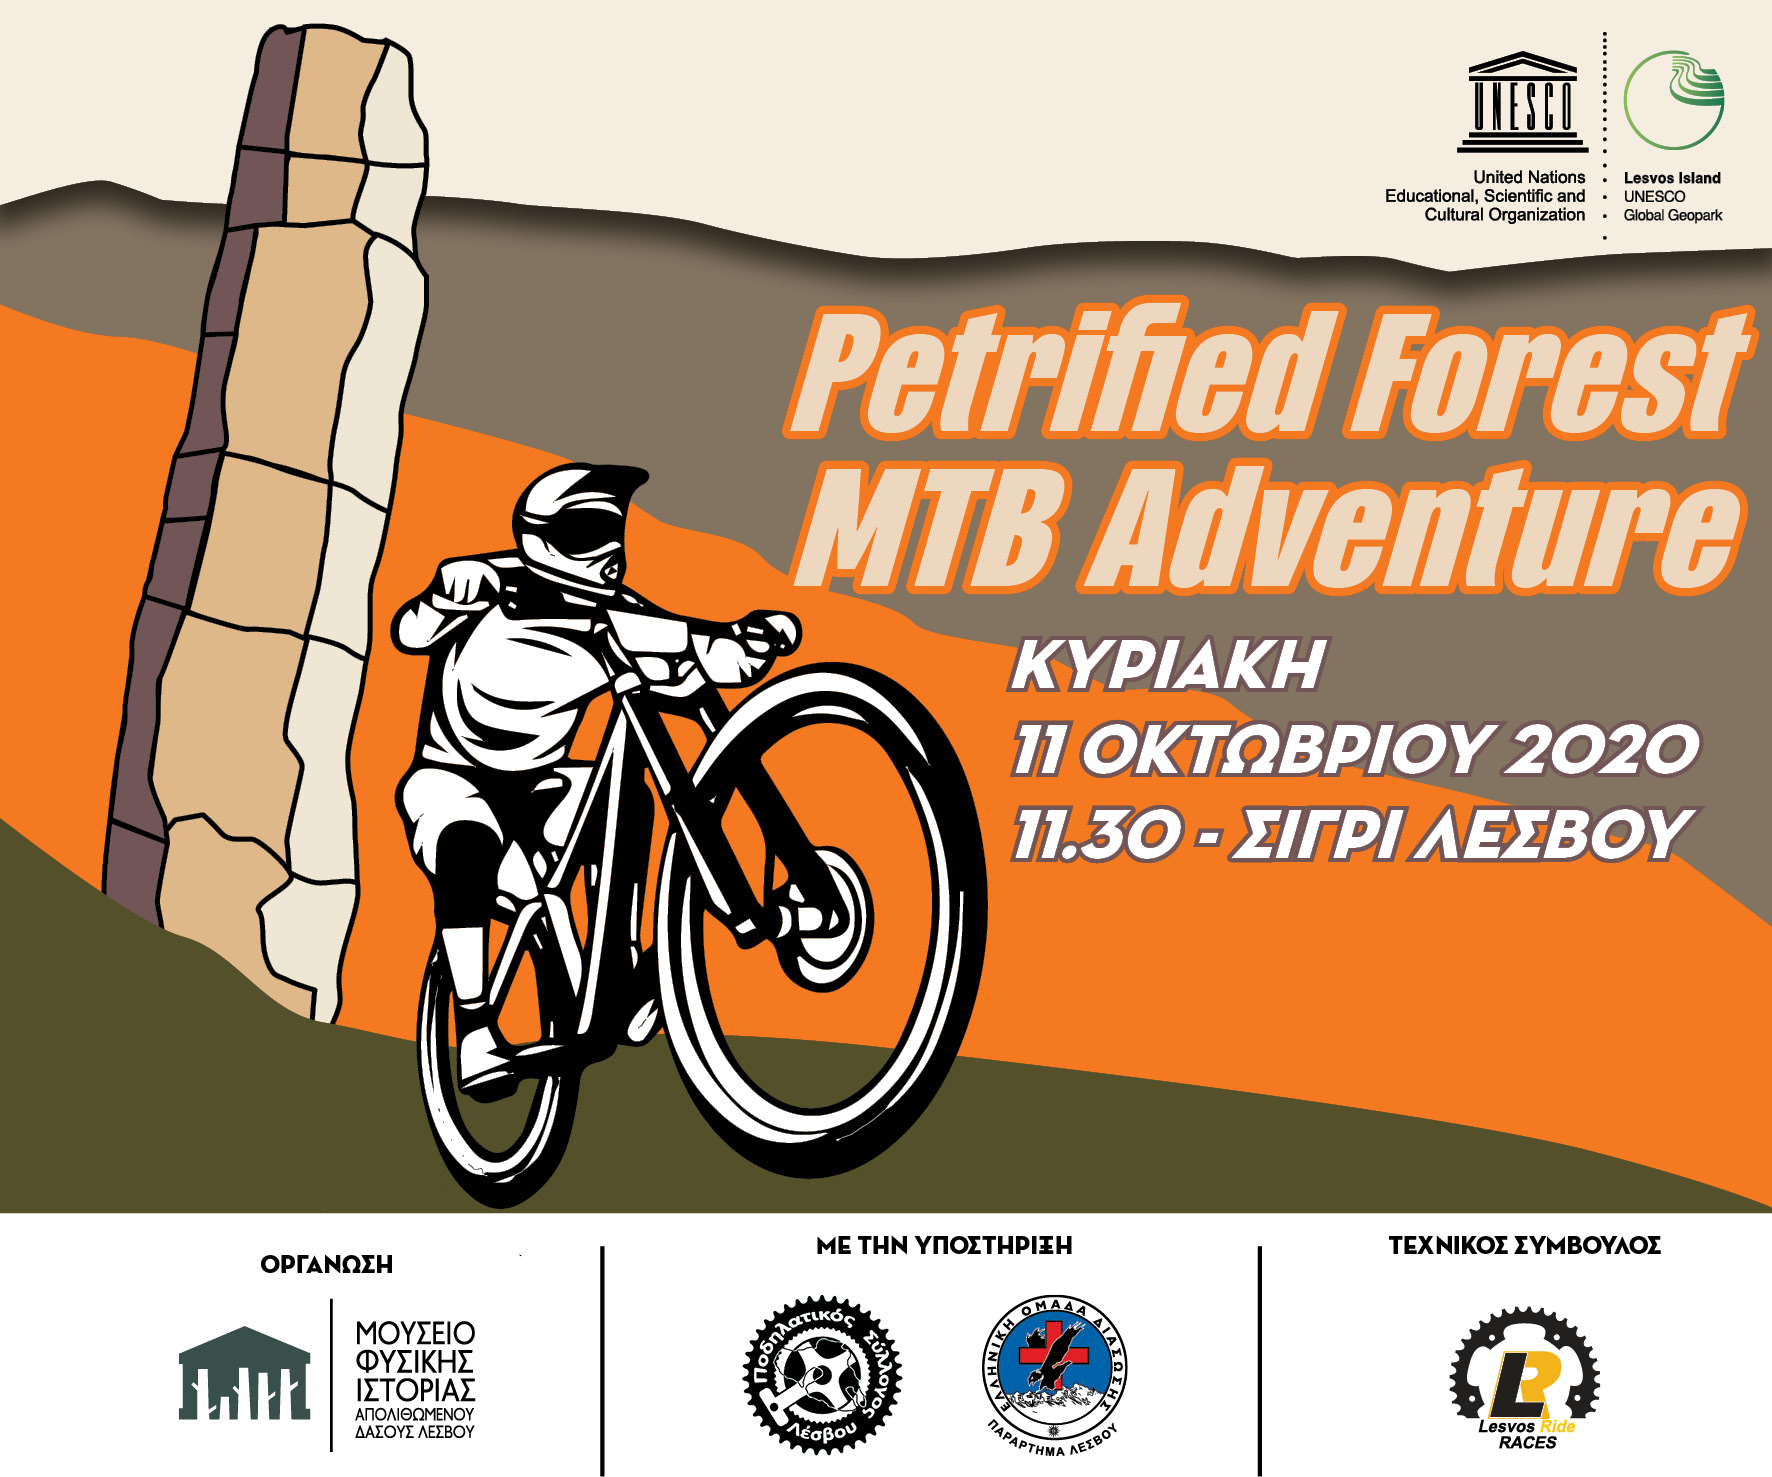 ''Petrified Forest Adventure MTB''